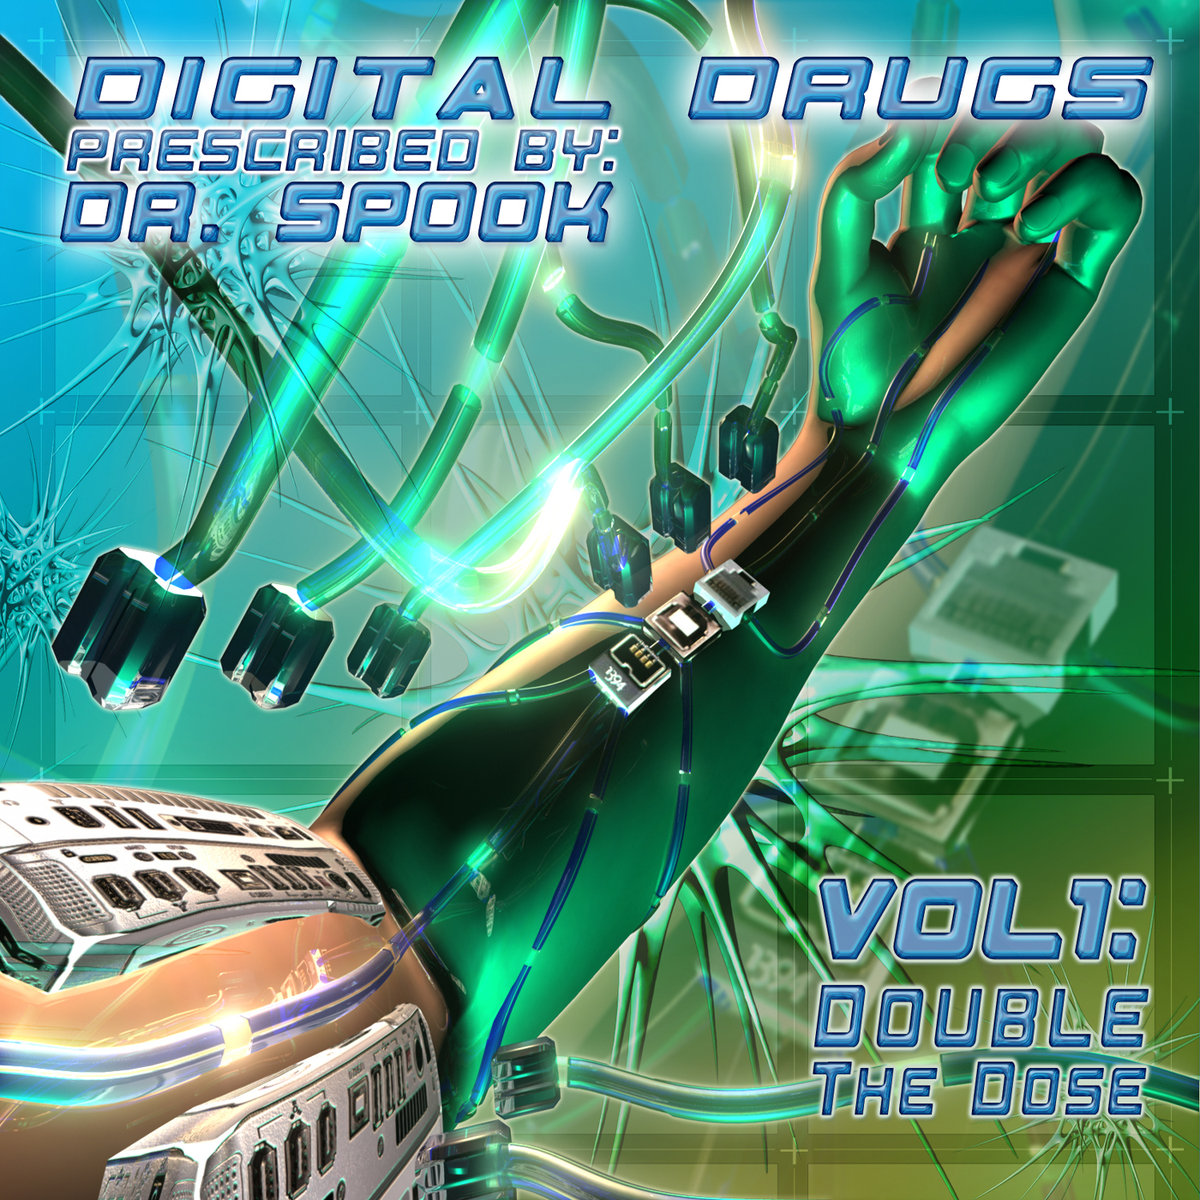 The Gorgon - Mutilated Brain @ 'Various Artists - Digital Drugs Vol.1: Double the Dose (Prescribed by Dr. Spook)' album (electronic, goa)